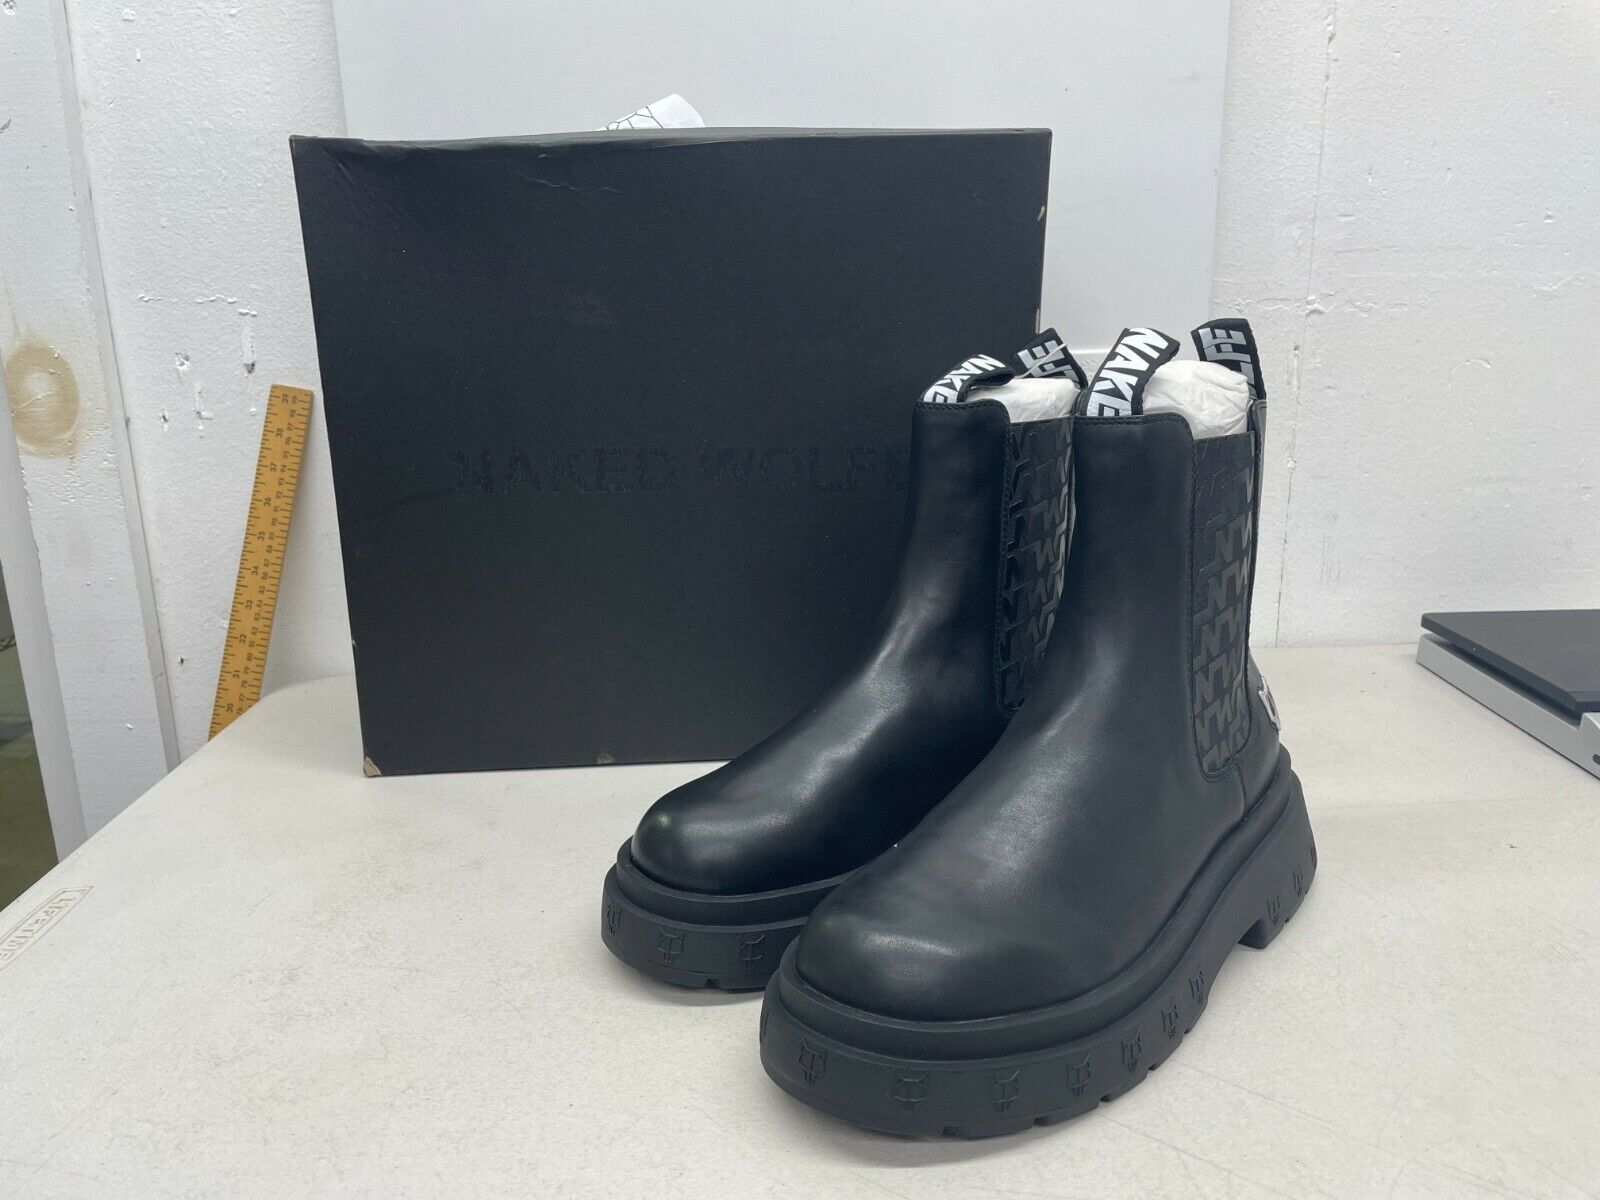 Naked Wolfe Men's Caution Boots - Black Leather - US Size 11